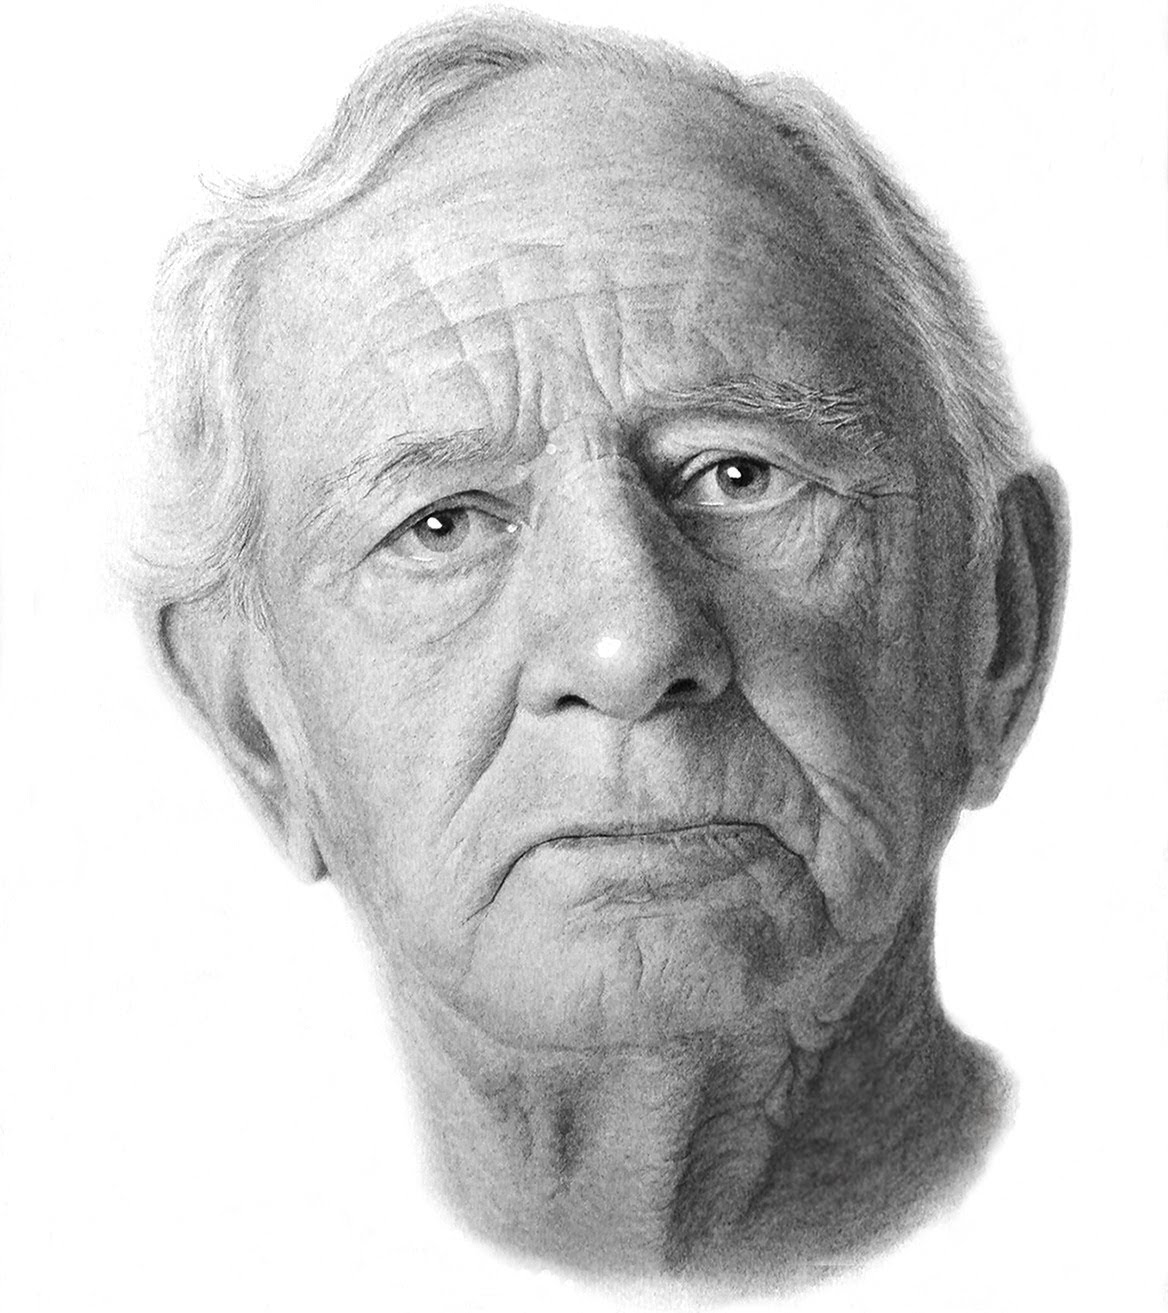 pencil-drawing-techniques-3